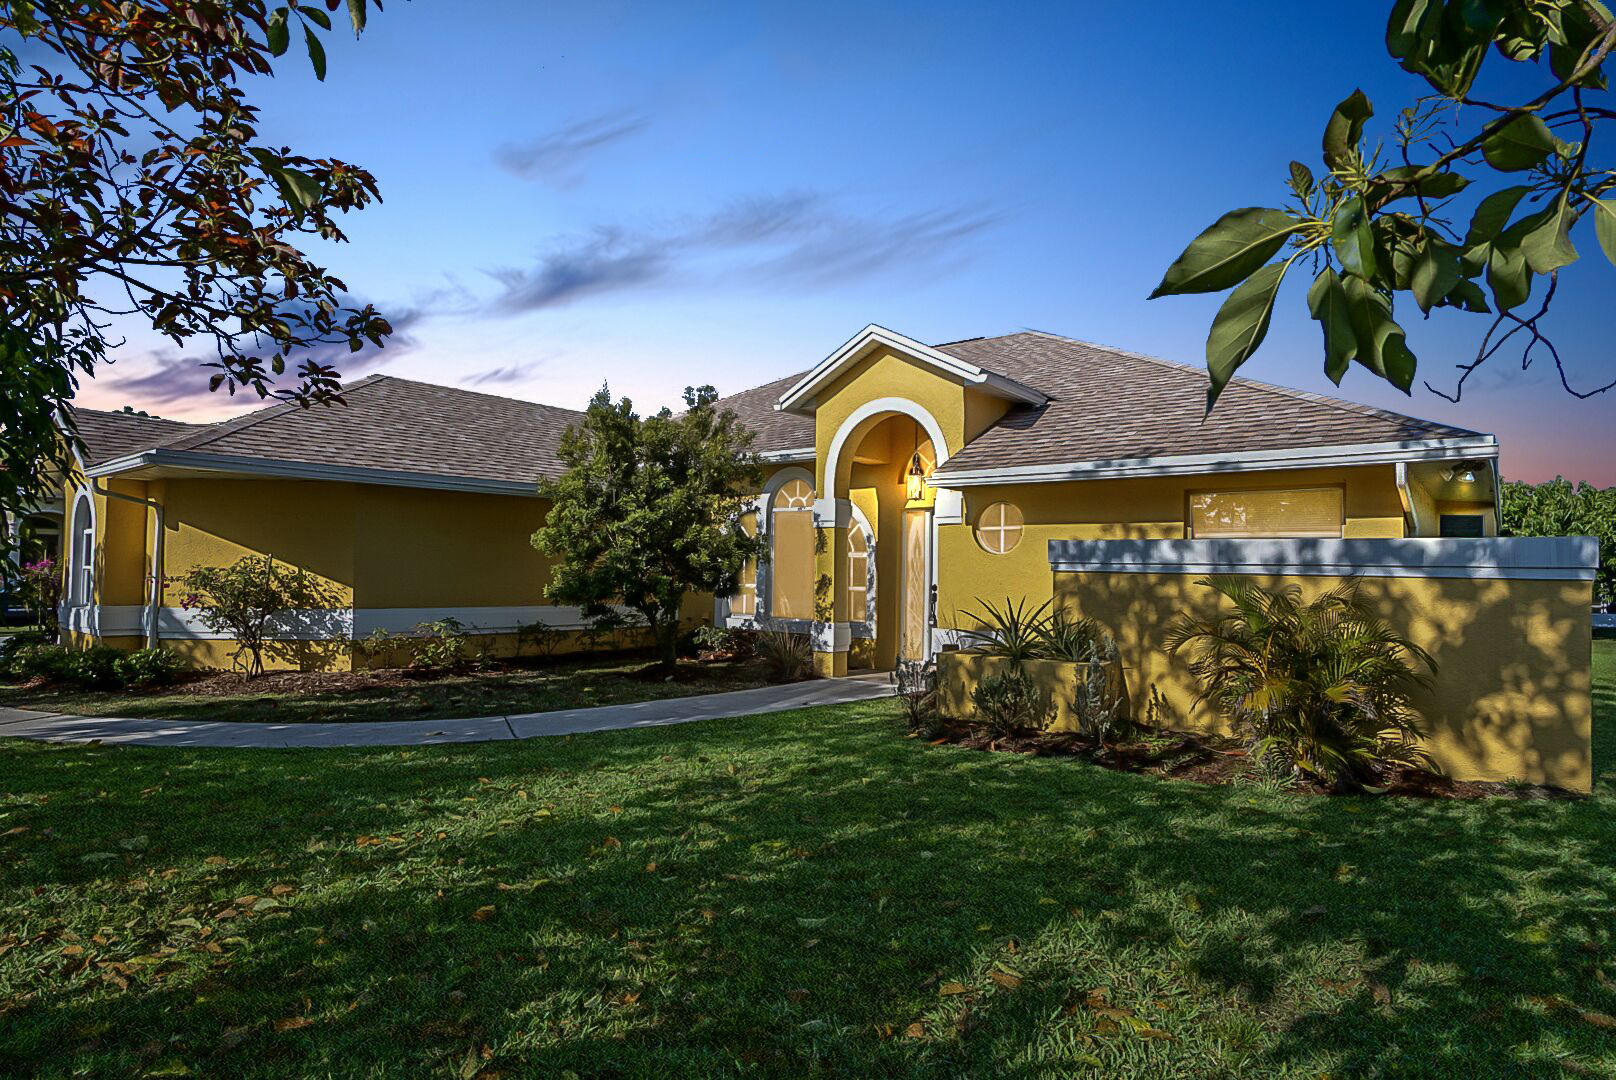 3036 SE Wake Road 34984 - One of Port Saint Lucie Homes for Sale